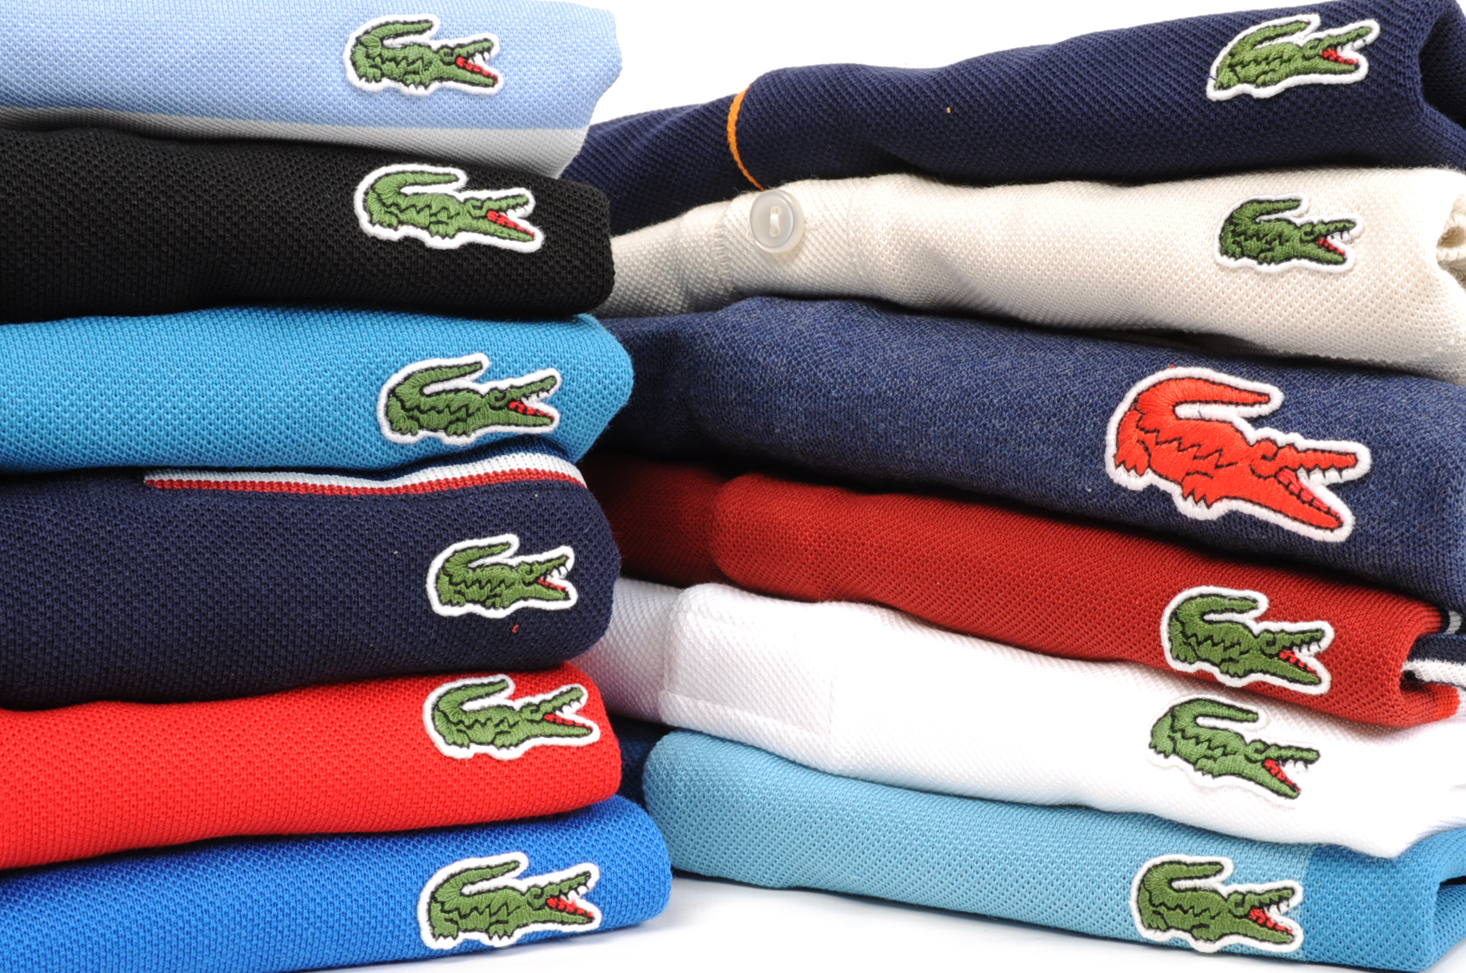 Lacoste polo shirts at Mainline Menswear